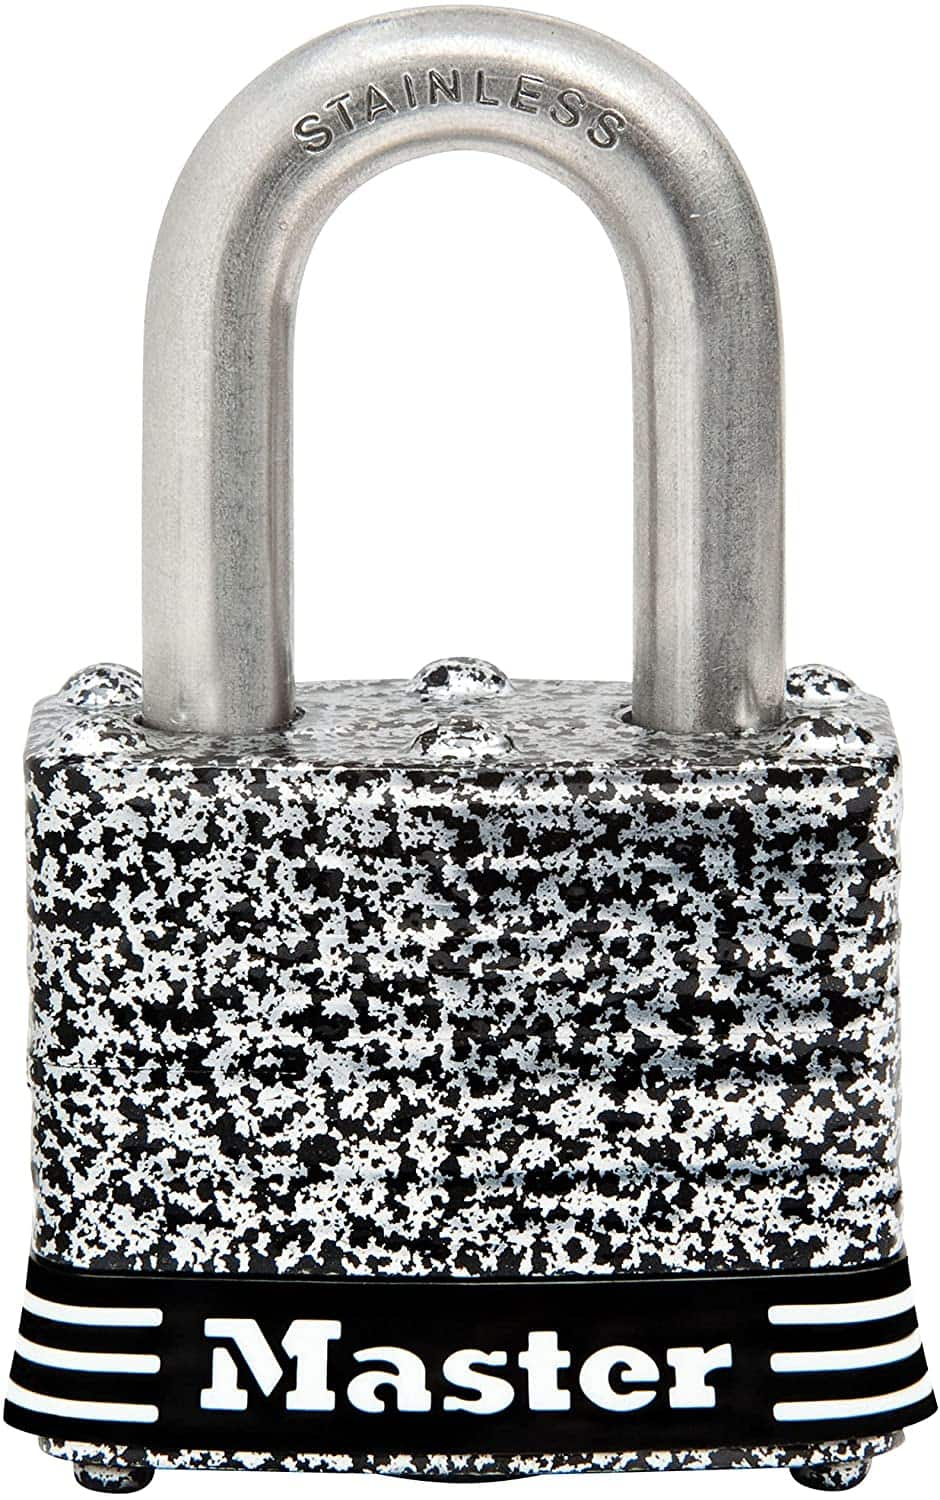 Master Lock Stainless Steel Padlocks w/ Tough Weather Coated Finish: 1-9/16 in. W from $5.50 & More + FS